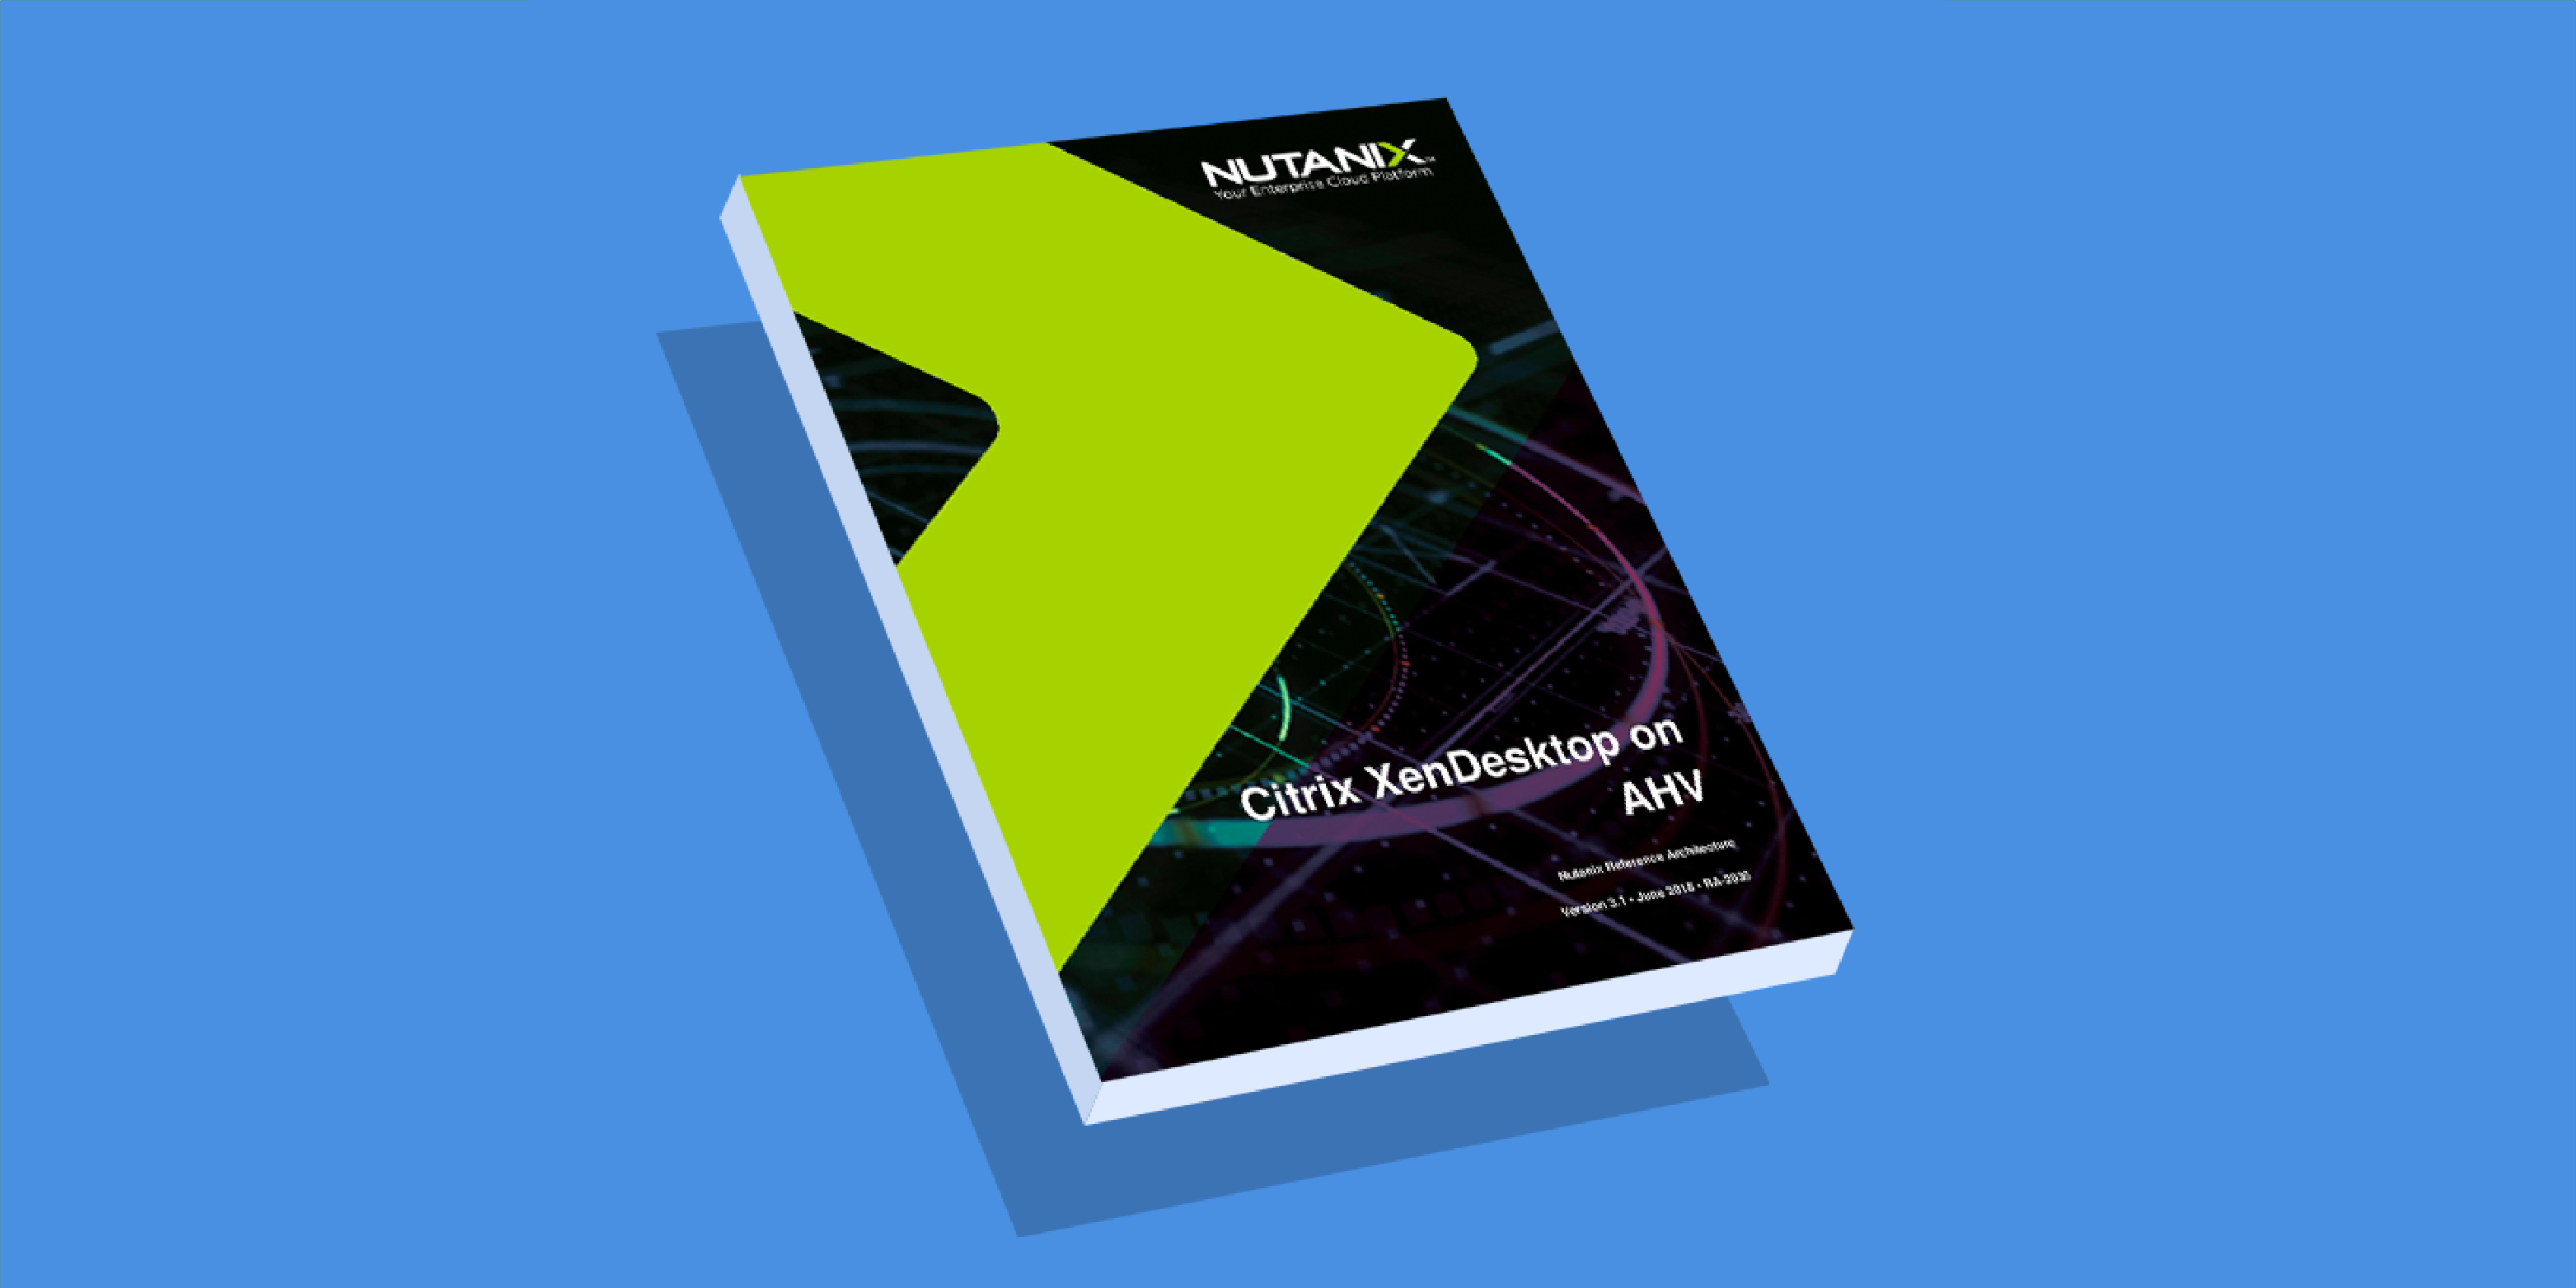 Citrix Virtual Desktop, Citrix VDI Architecture - Nutanix